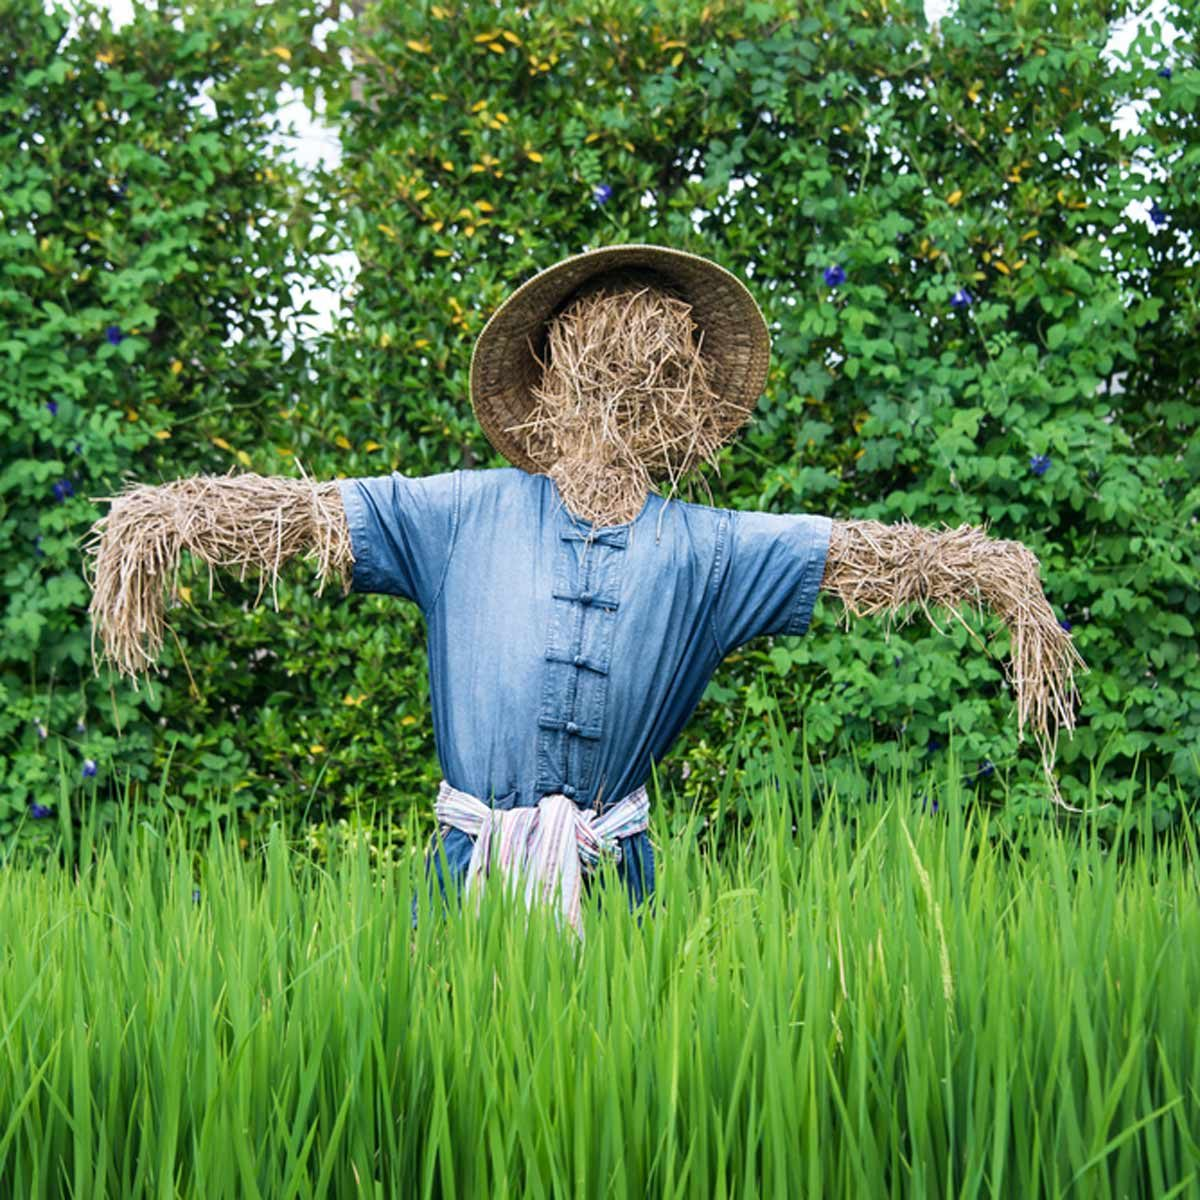 13 Amazing Scarecrows The Family Handyman